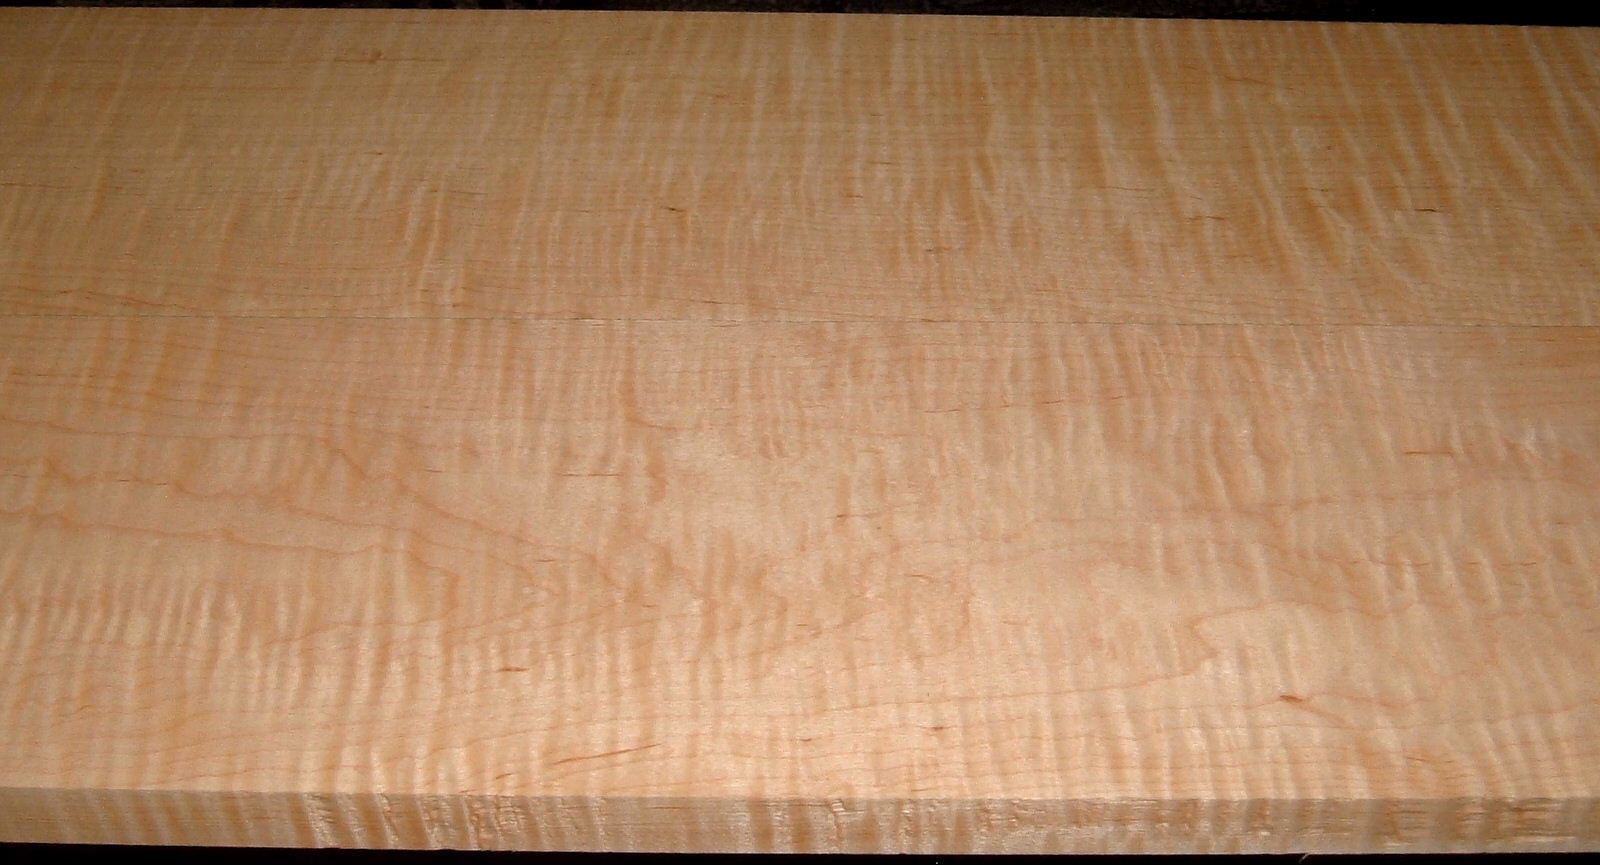 HM2005-79, 2bds, 7/8x6-1/4x59 ,7/8x6-1/2x59, Curly Tiger Hard Maple